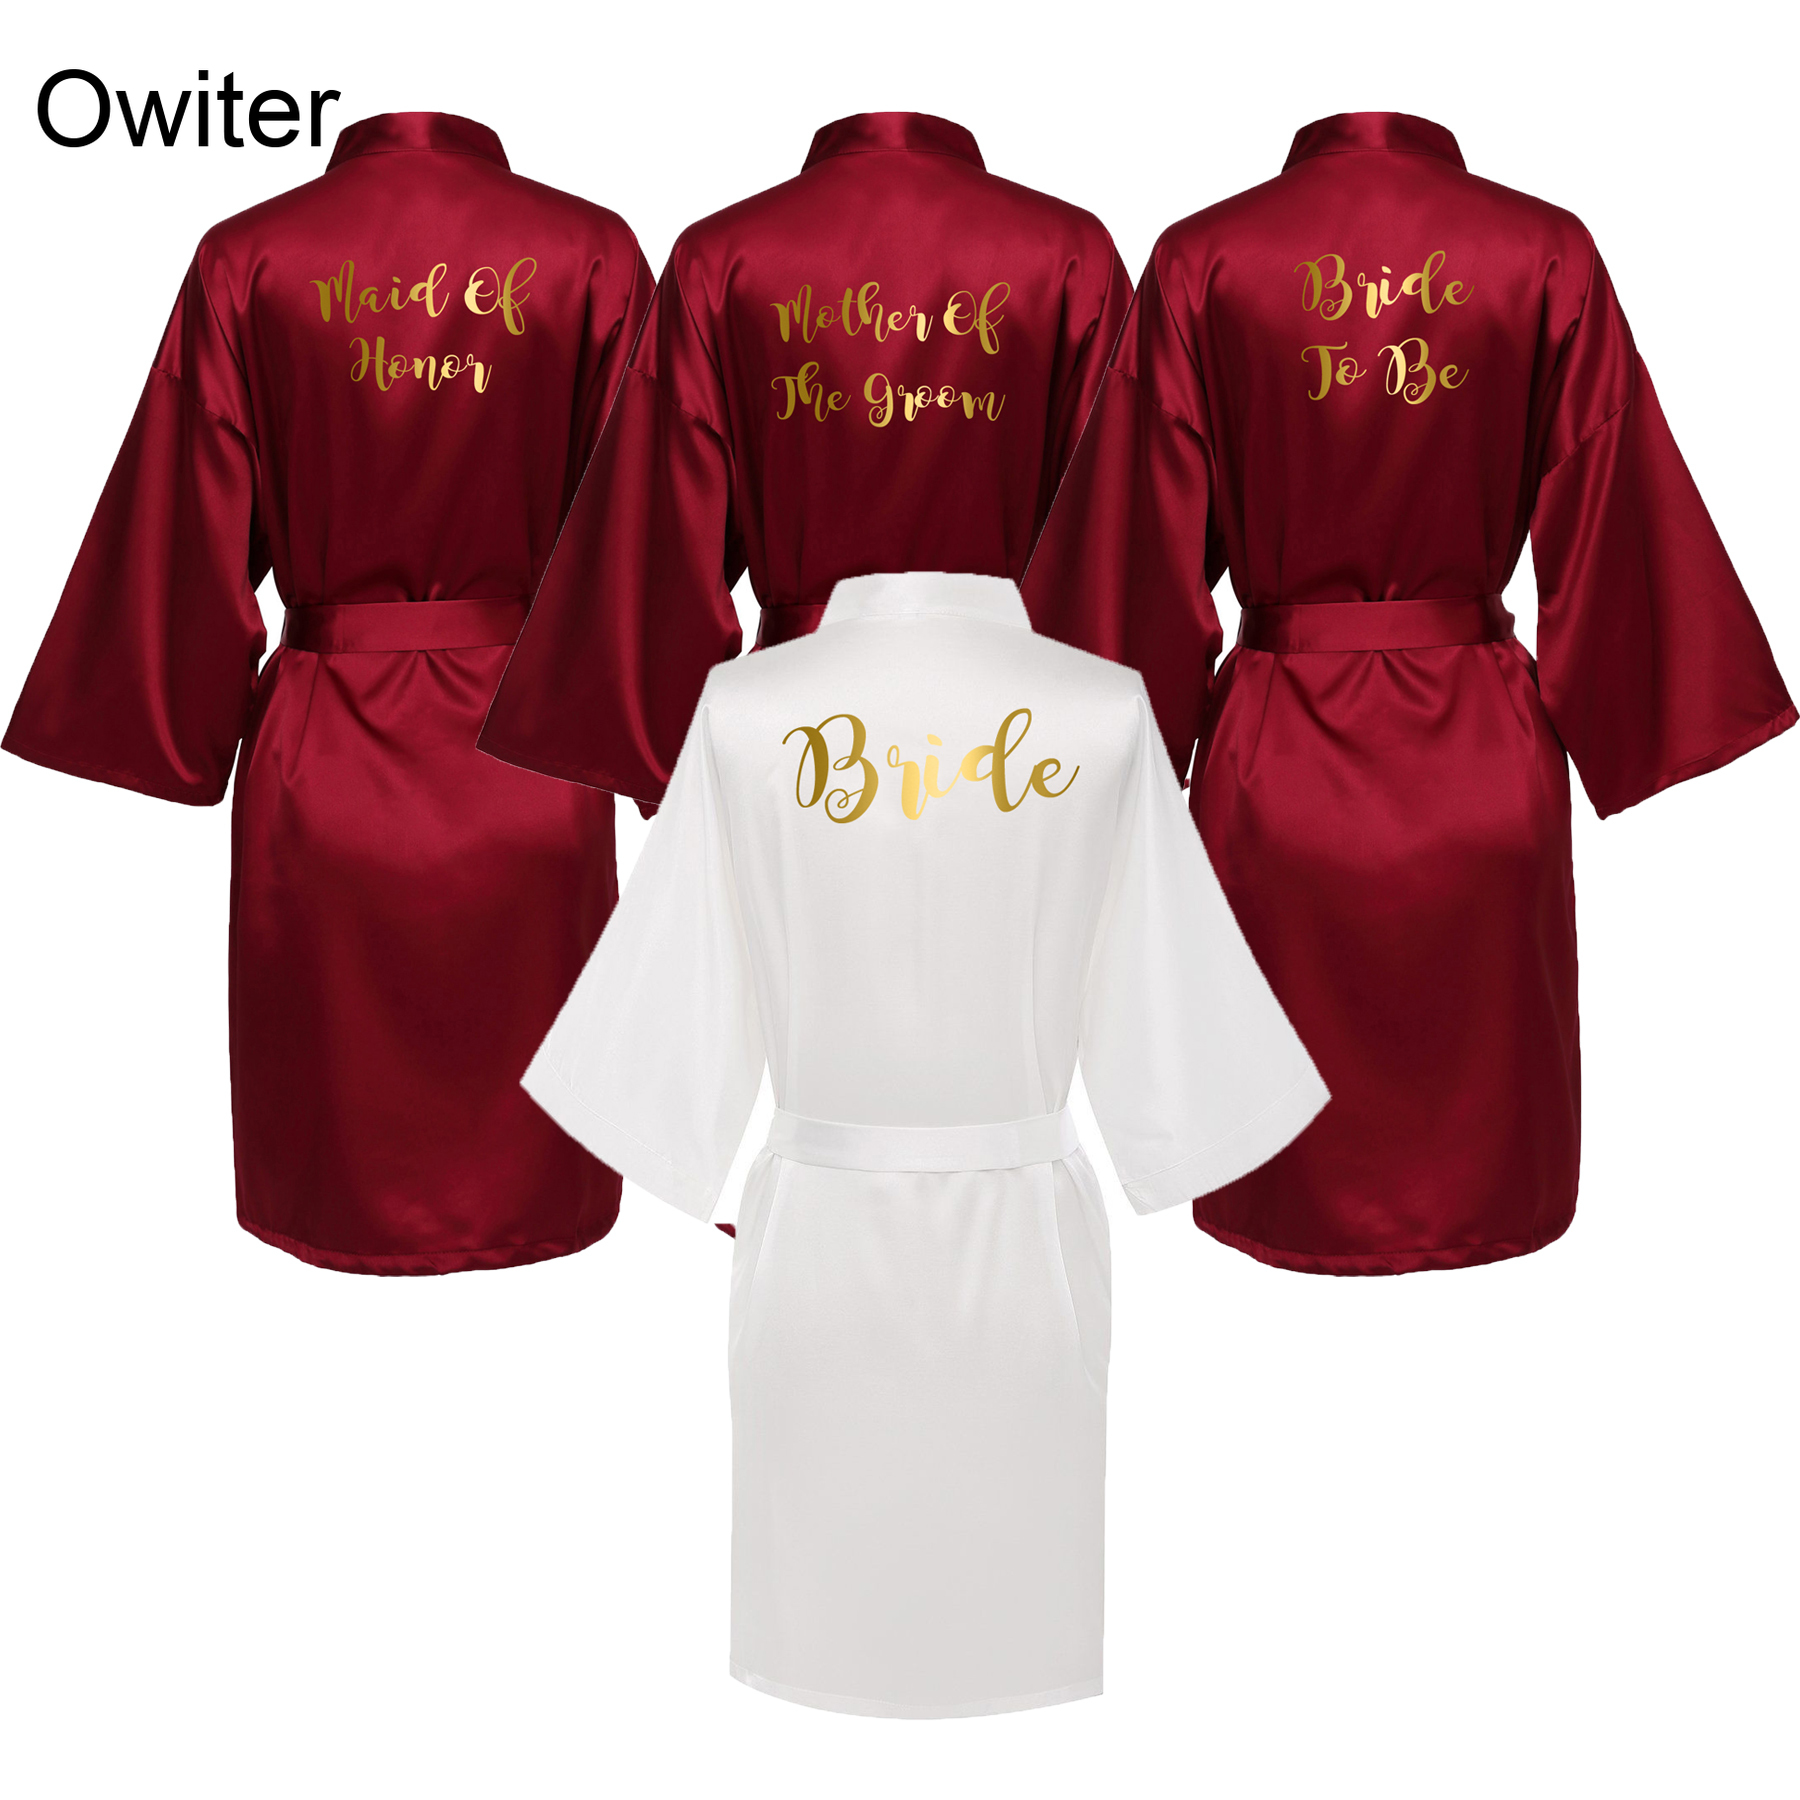 Owiter Bride Robe Women Burgundy Robe Satin Silk Robes Wedding  Bridal Bridesmaid  Robes